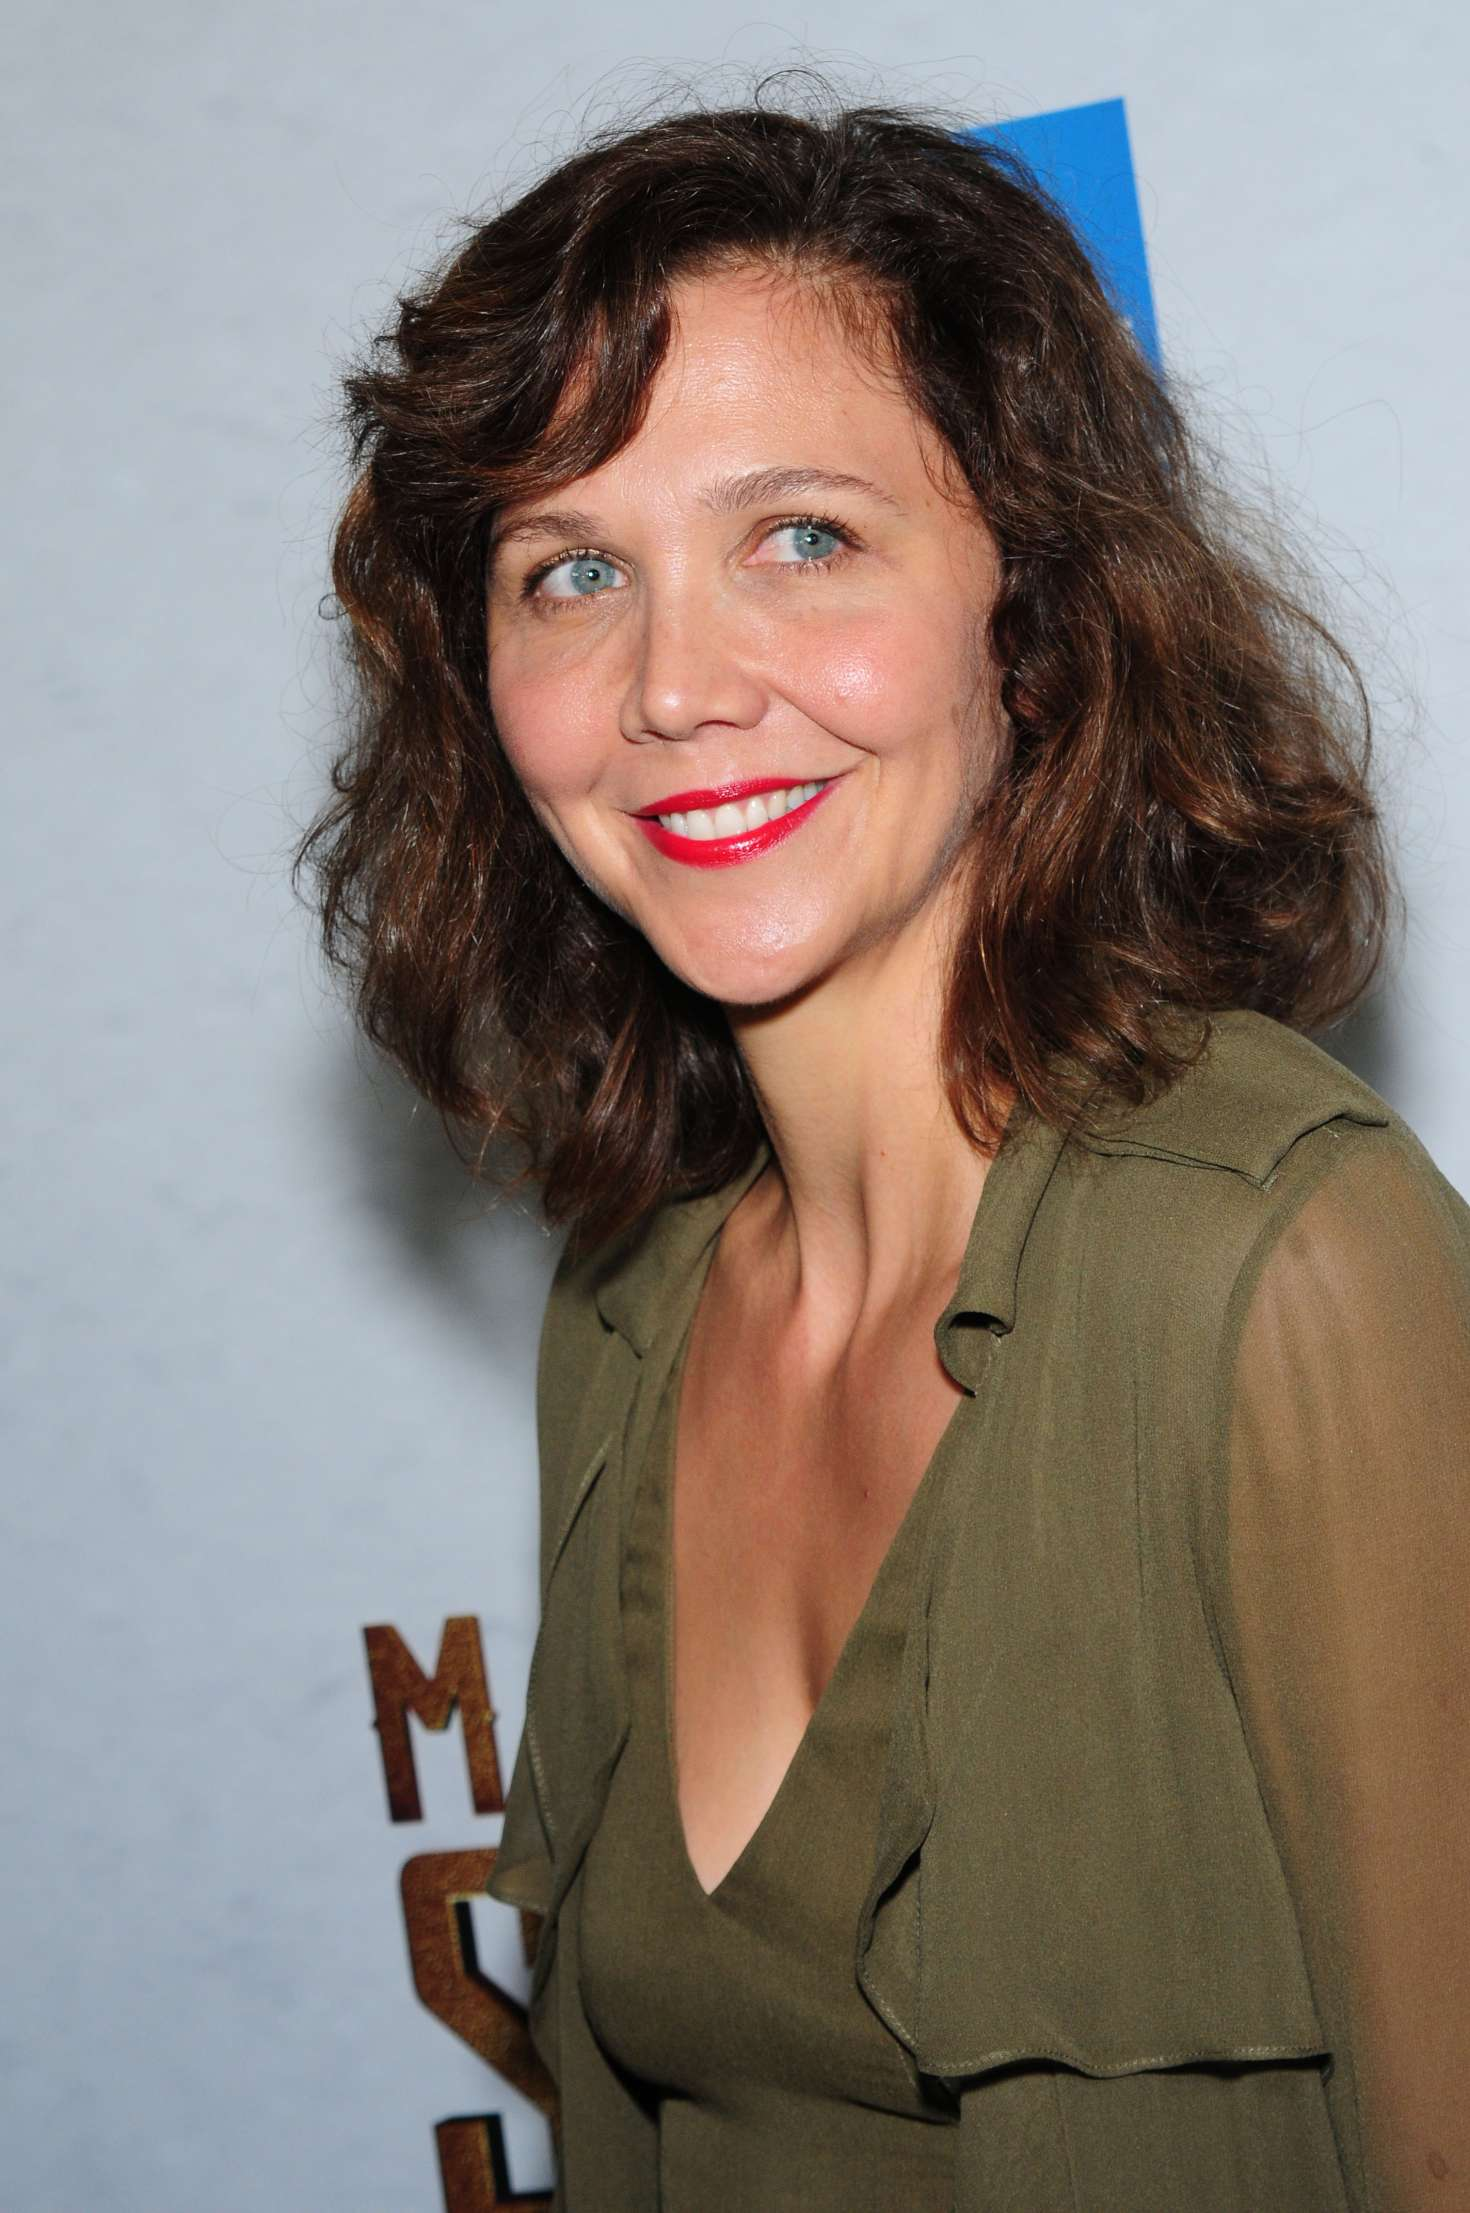 Maggie Gyllenhaal - 'The Magnificent Seven' Premiere in ... Maggie Gyllenhaal